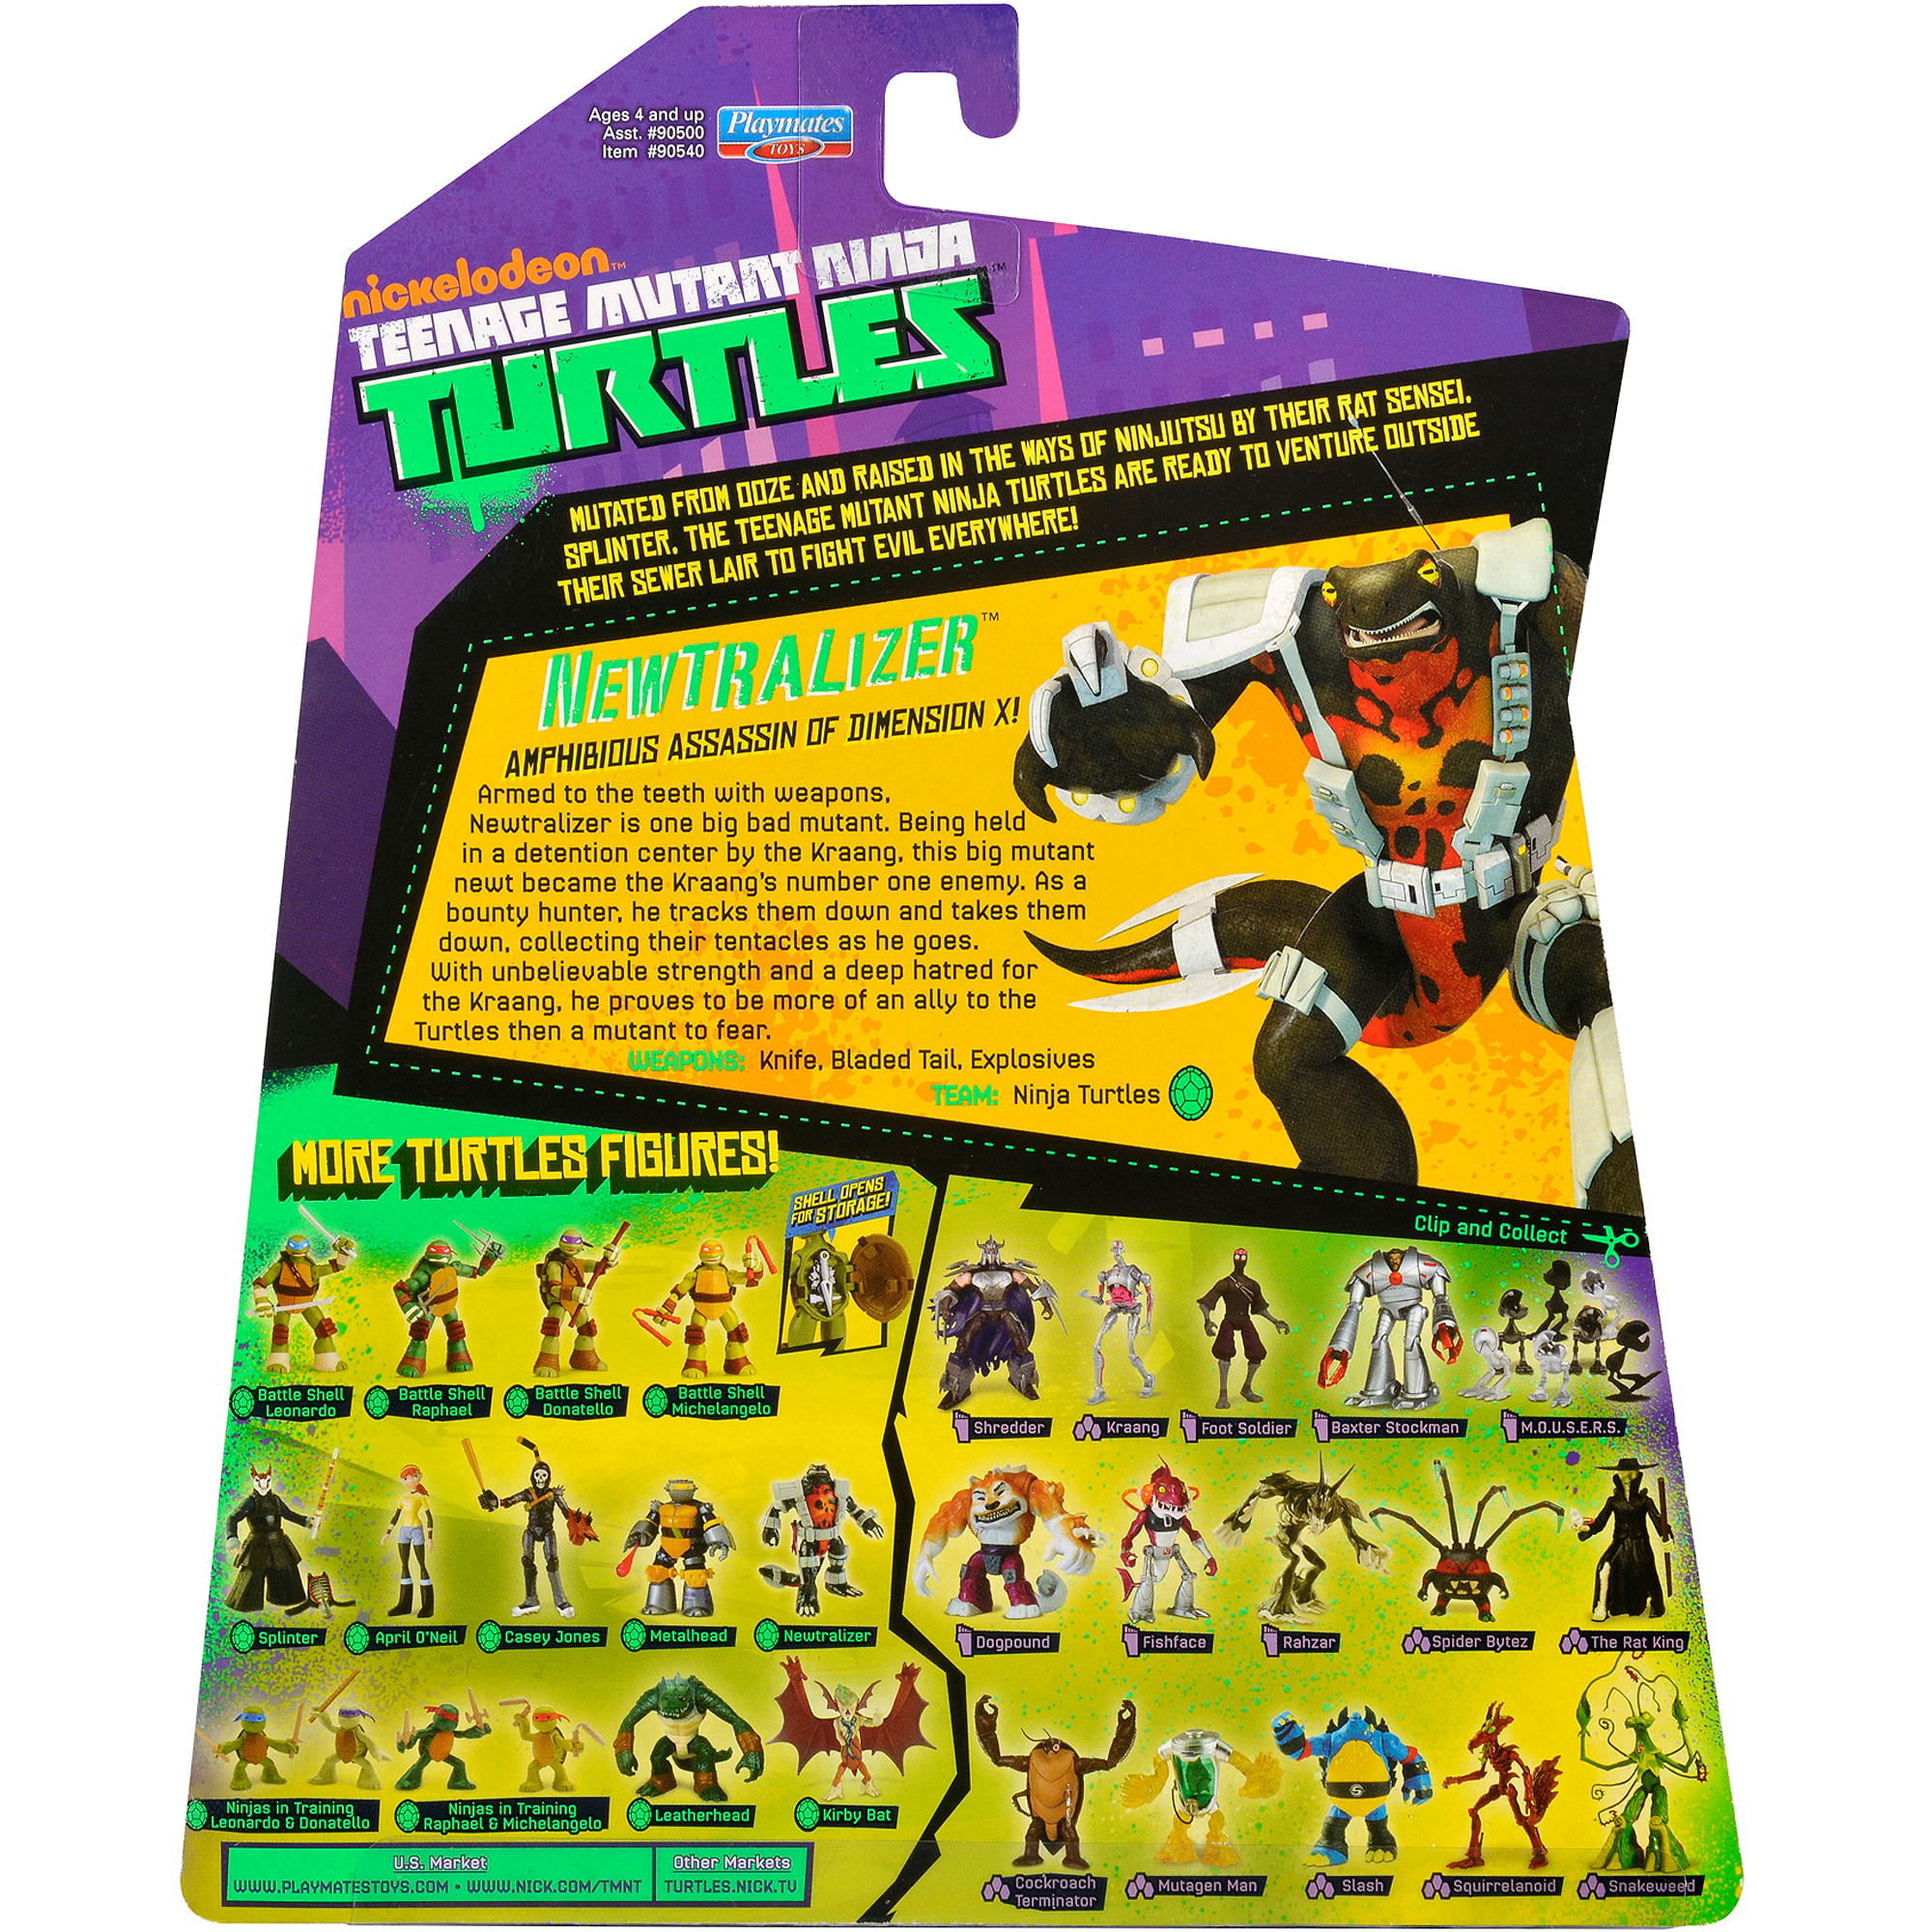 Teenage Mutant Ninja Turtles Newtralizer Action Figure